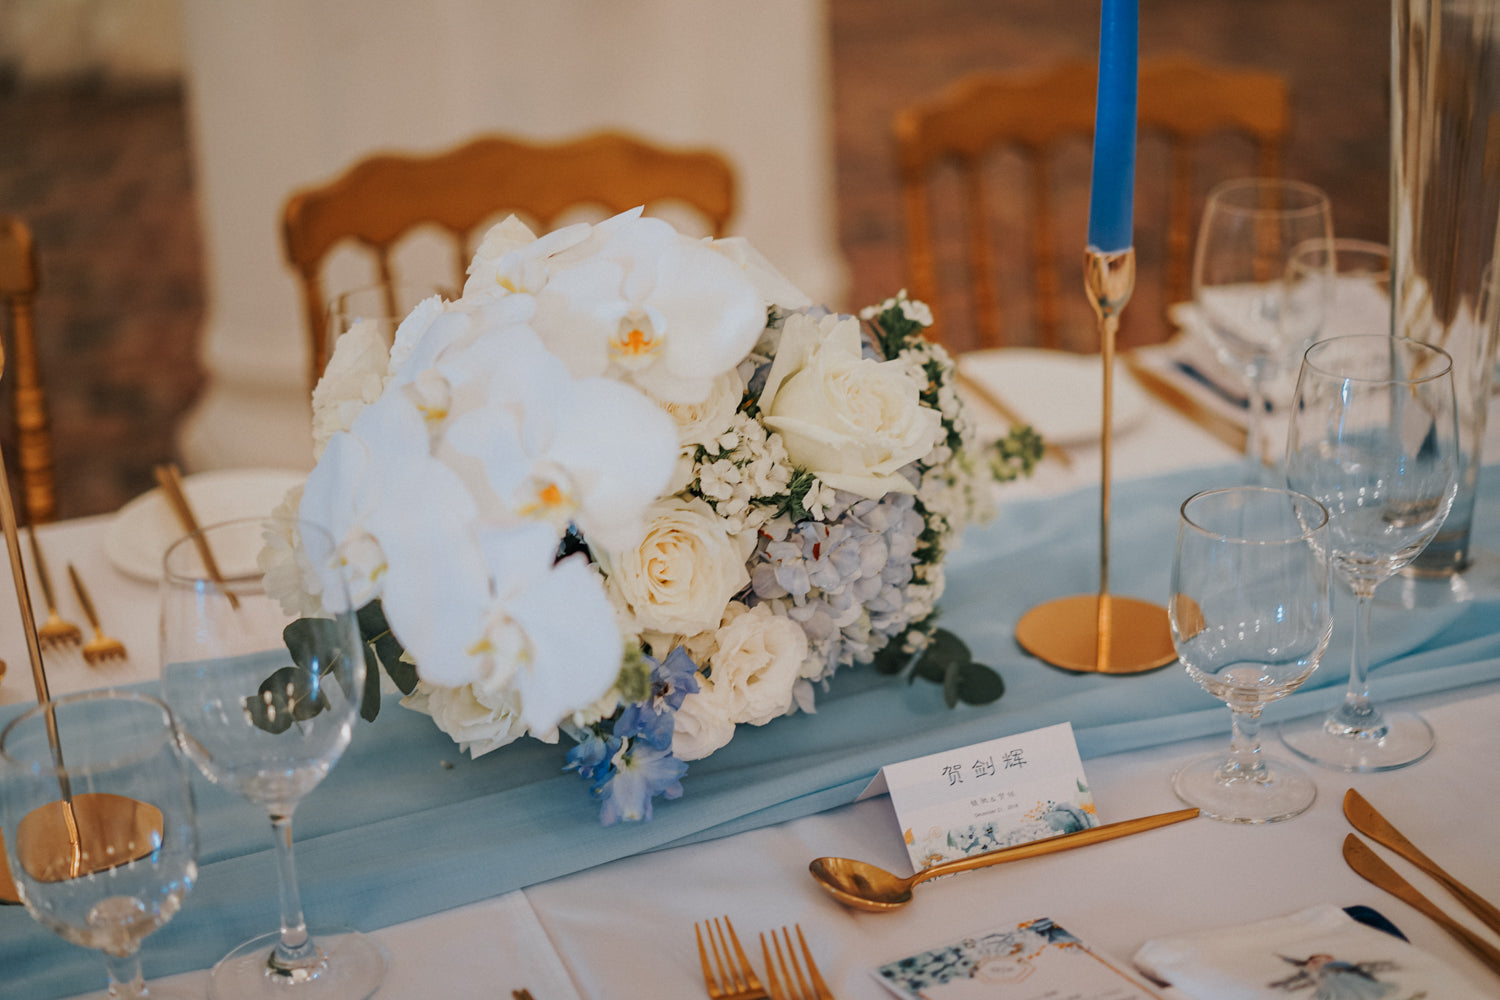 Floral arrangement of white orchids and roses with blue hydrangea on a white table with baby blue table runner at a solemnisation